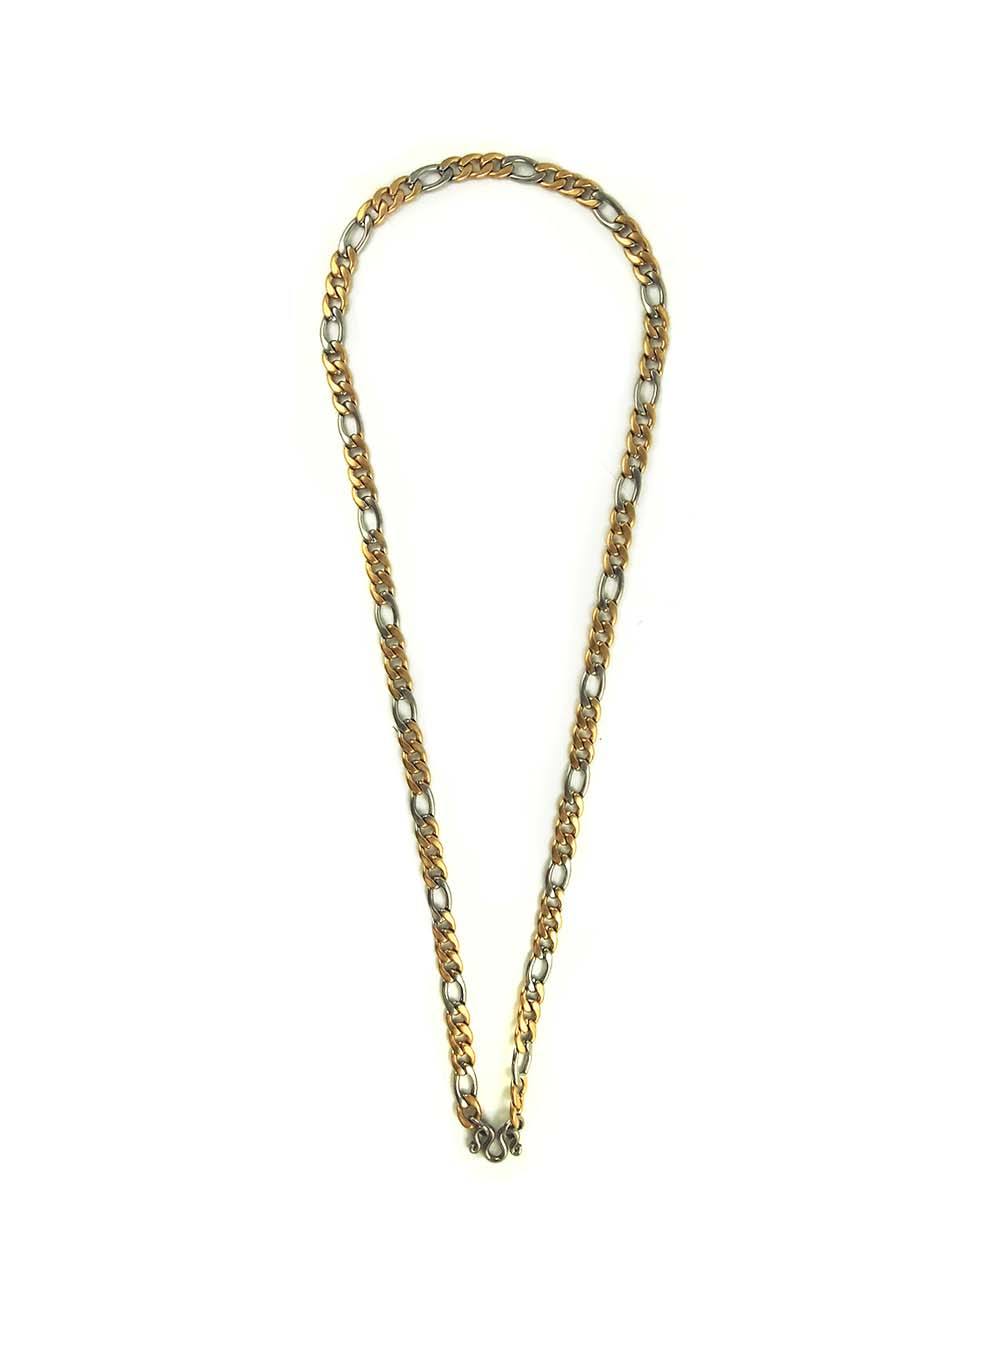 Gold and Silver Stainless Steel Chain One Hook Amulet Necklace #1 (67cm) -  Ren Ting Online